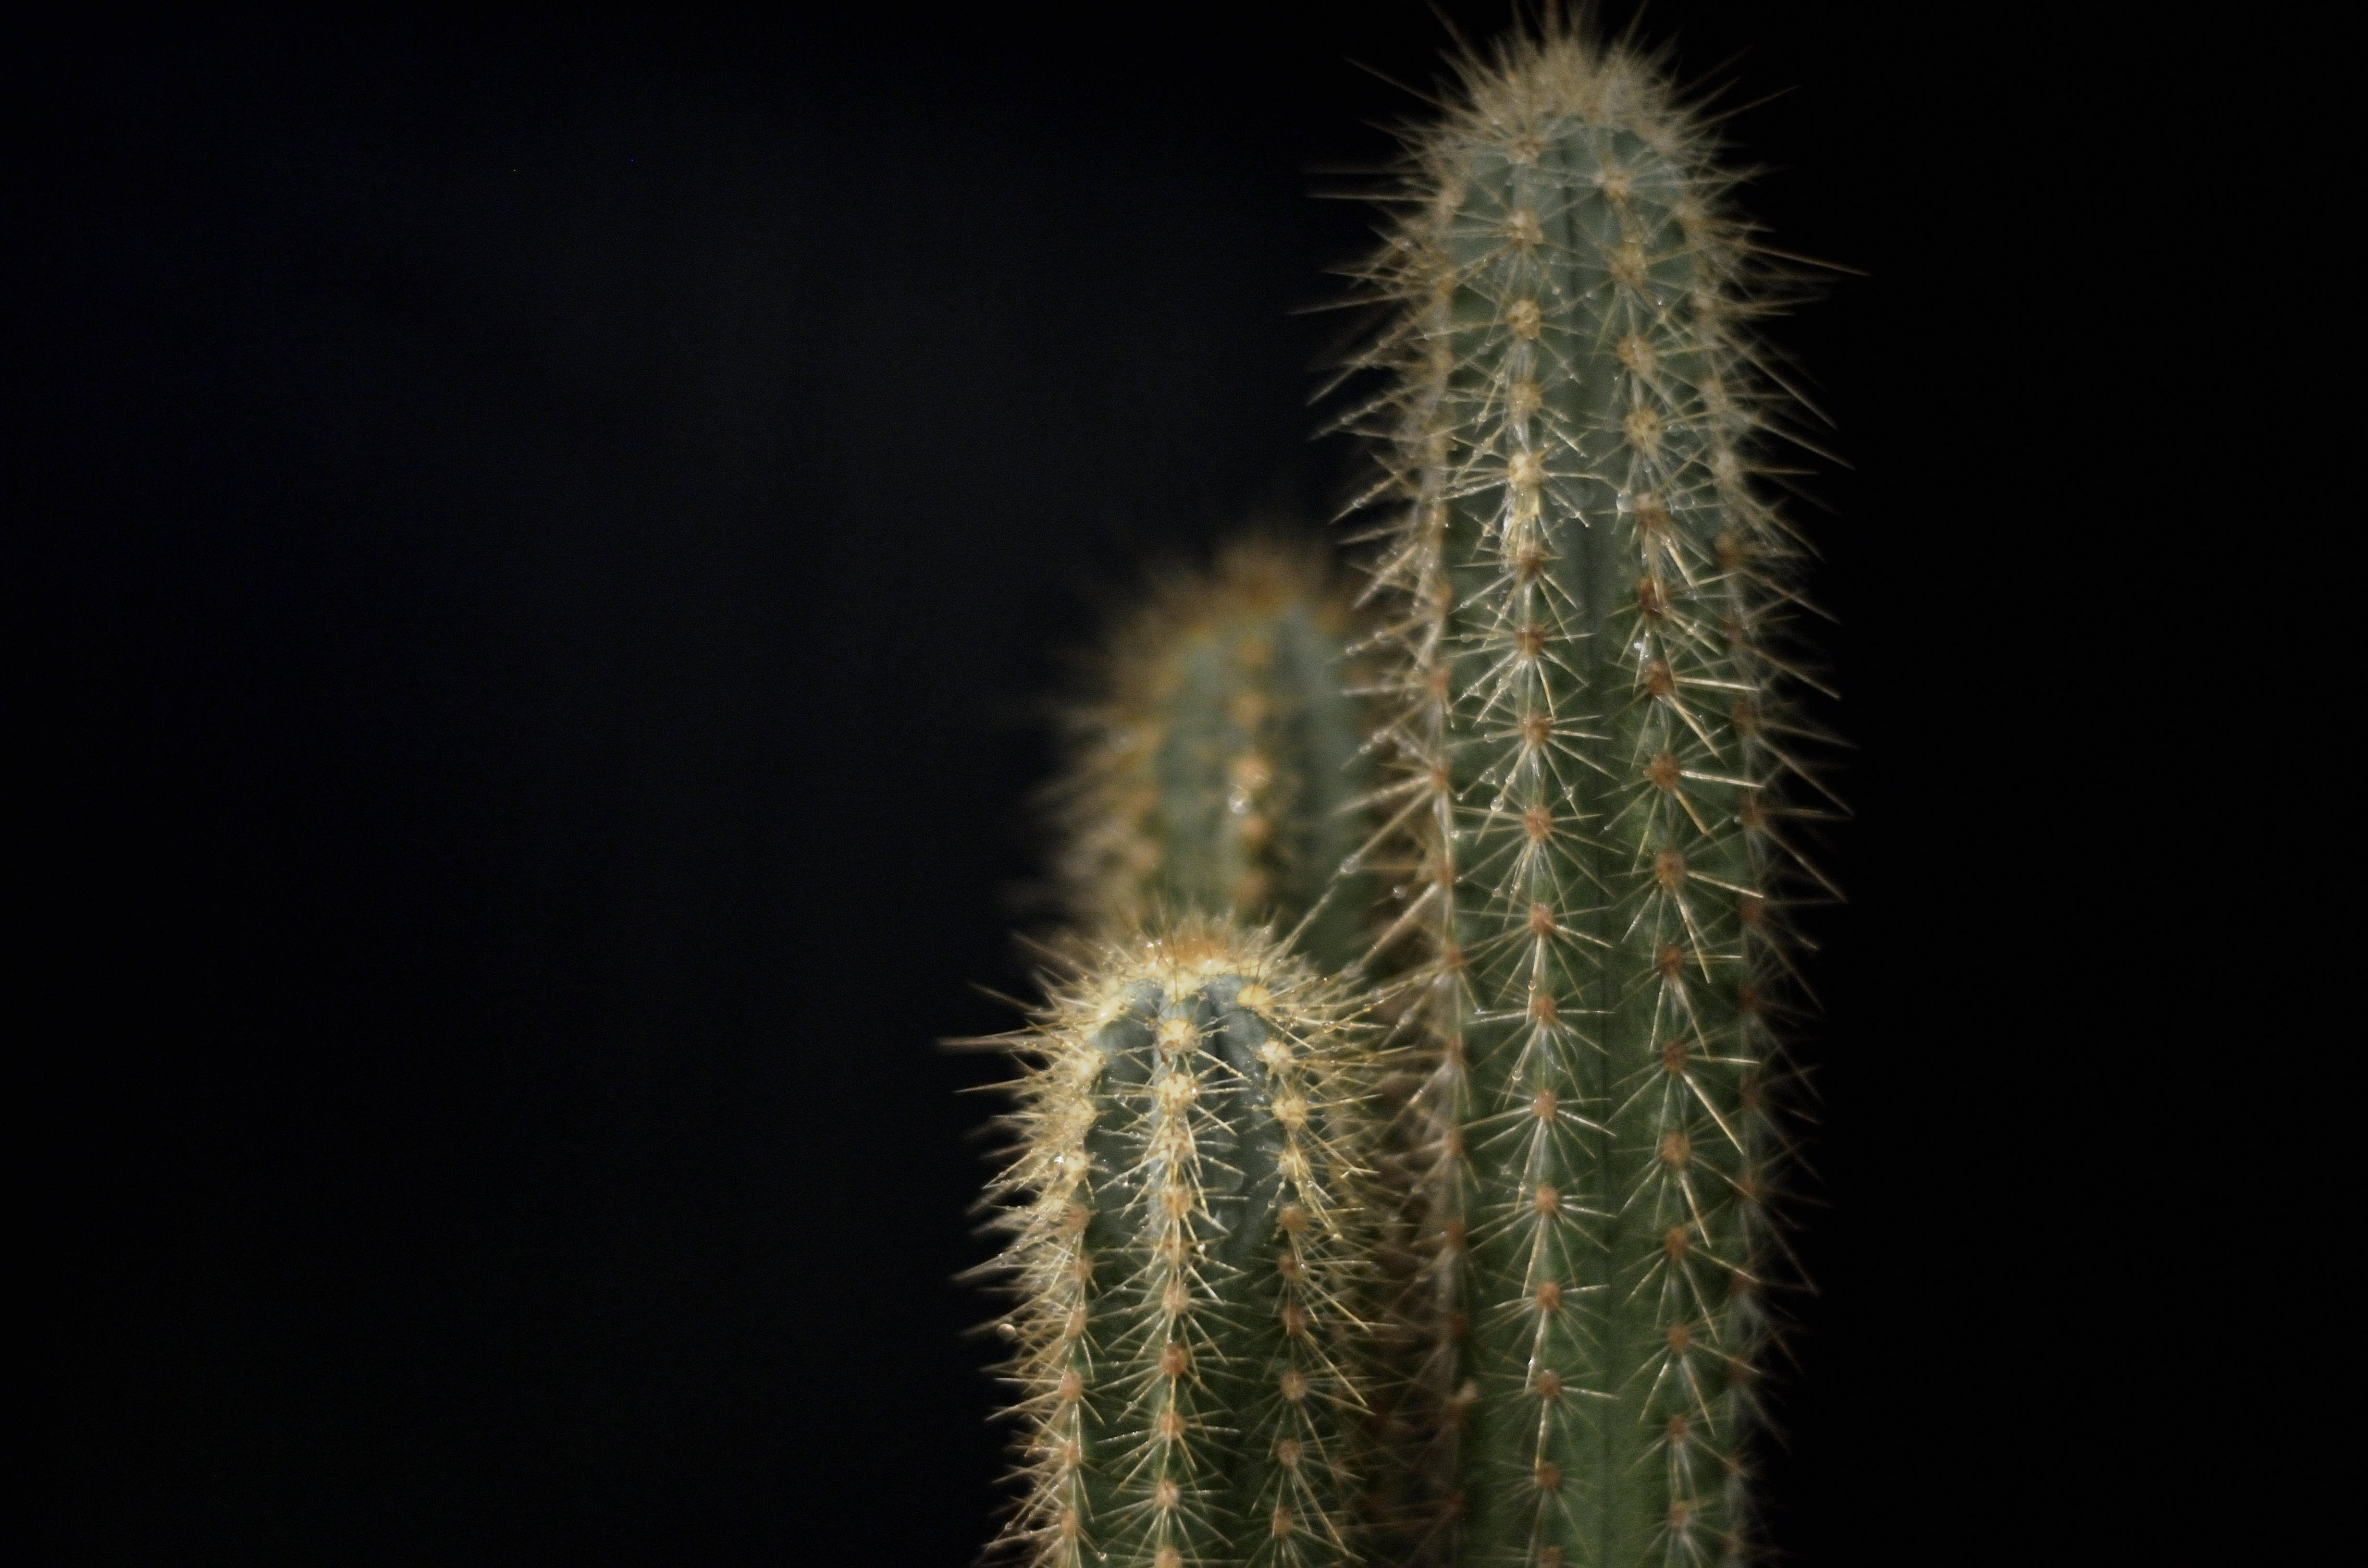 Cactus Plant With Black Background